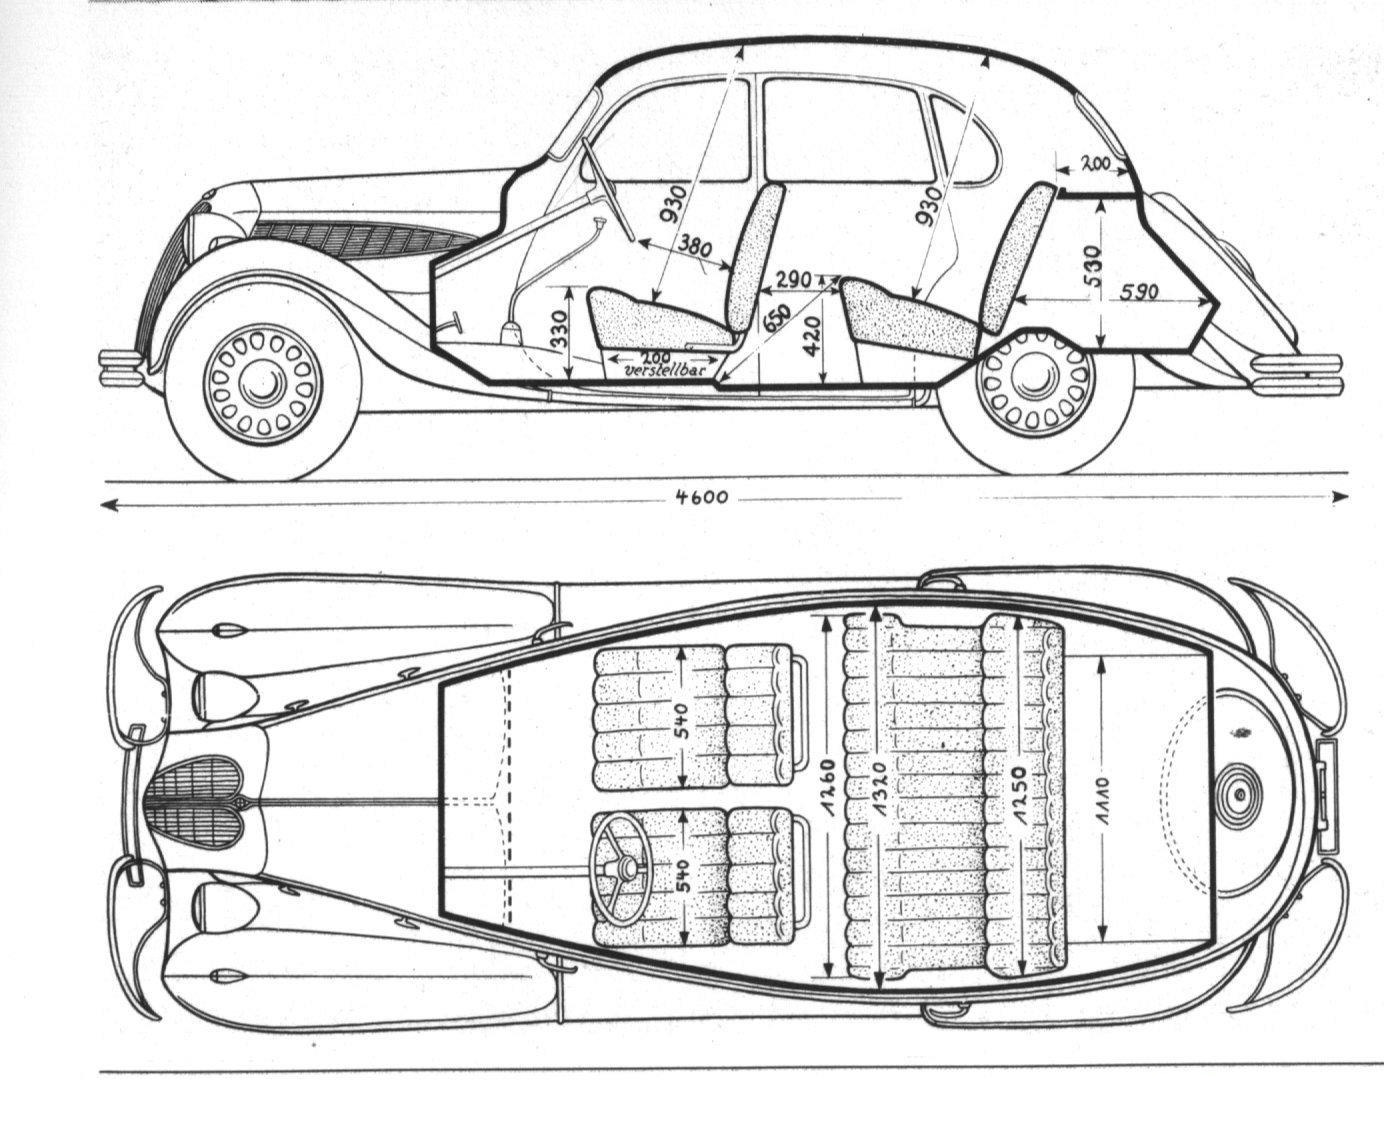 Bmw 326 1936 blueprint download free blueprint for 3d modeling bmw 326 blueprint malvernweather Image collections